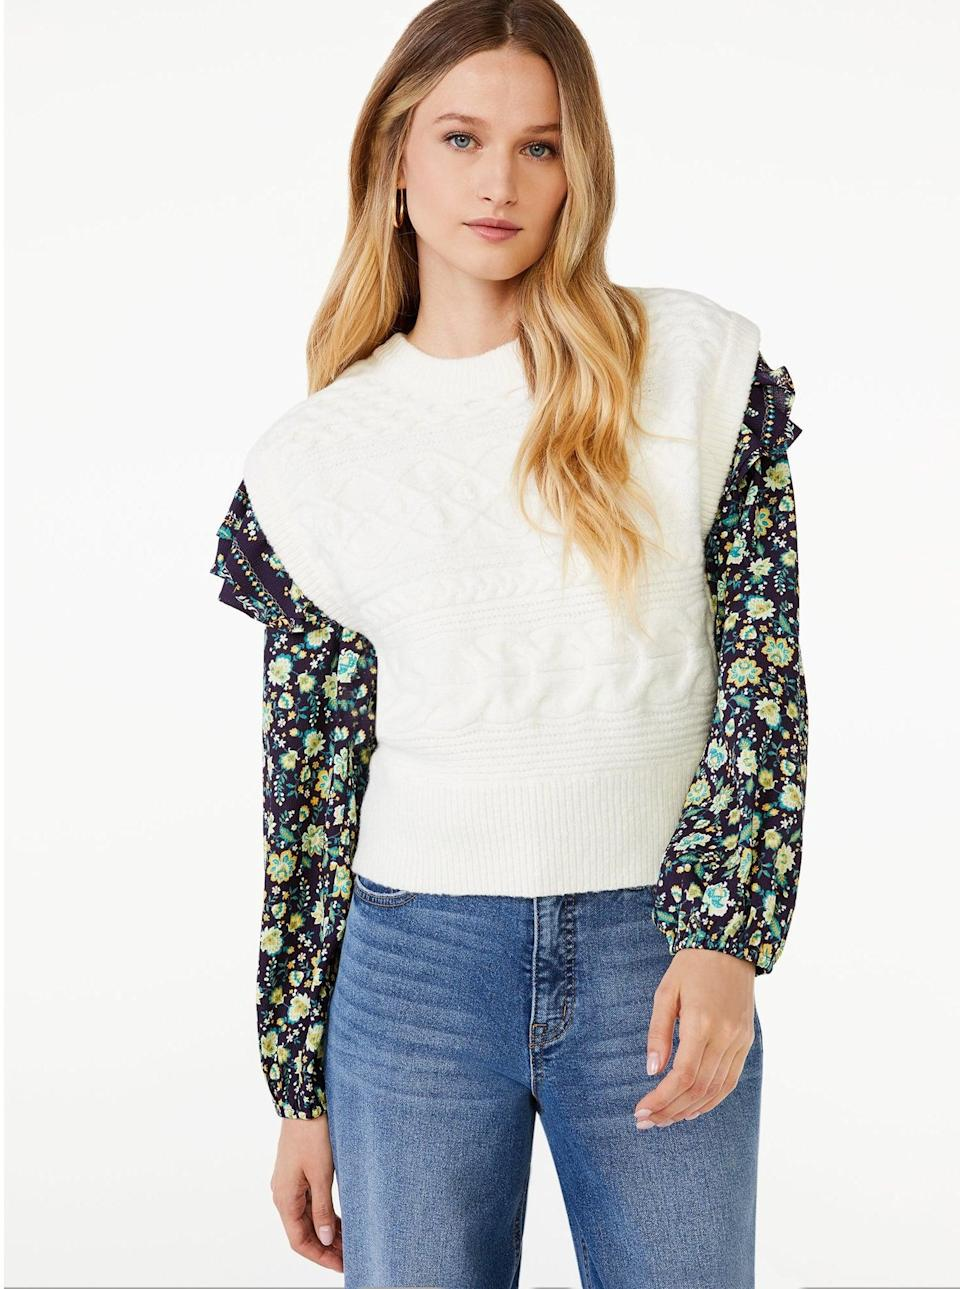 <p>Layer this <span>Scoop Women's Cable Knit Sweater Vest</span> ($26) over your favorite long-sleeved top to look put-together and on-trend in no time.</p>